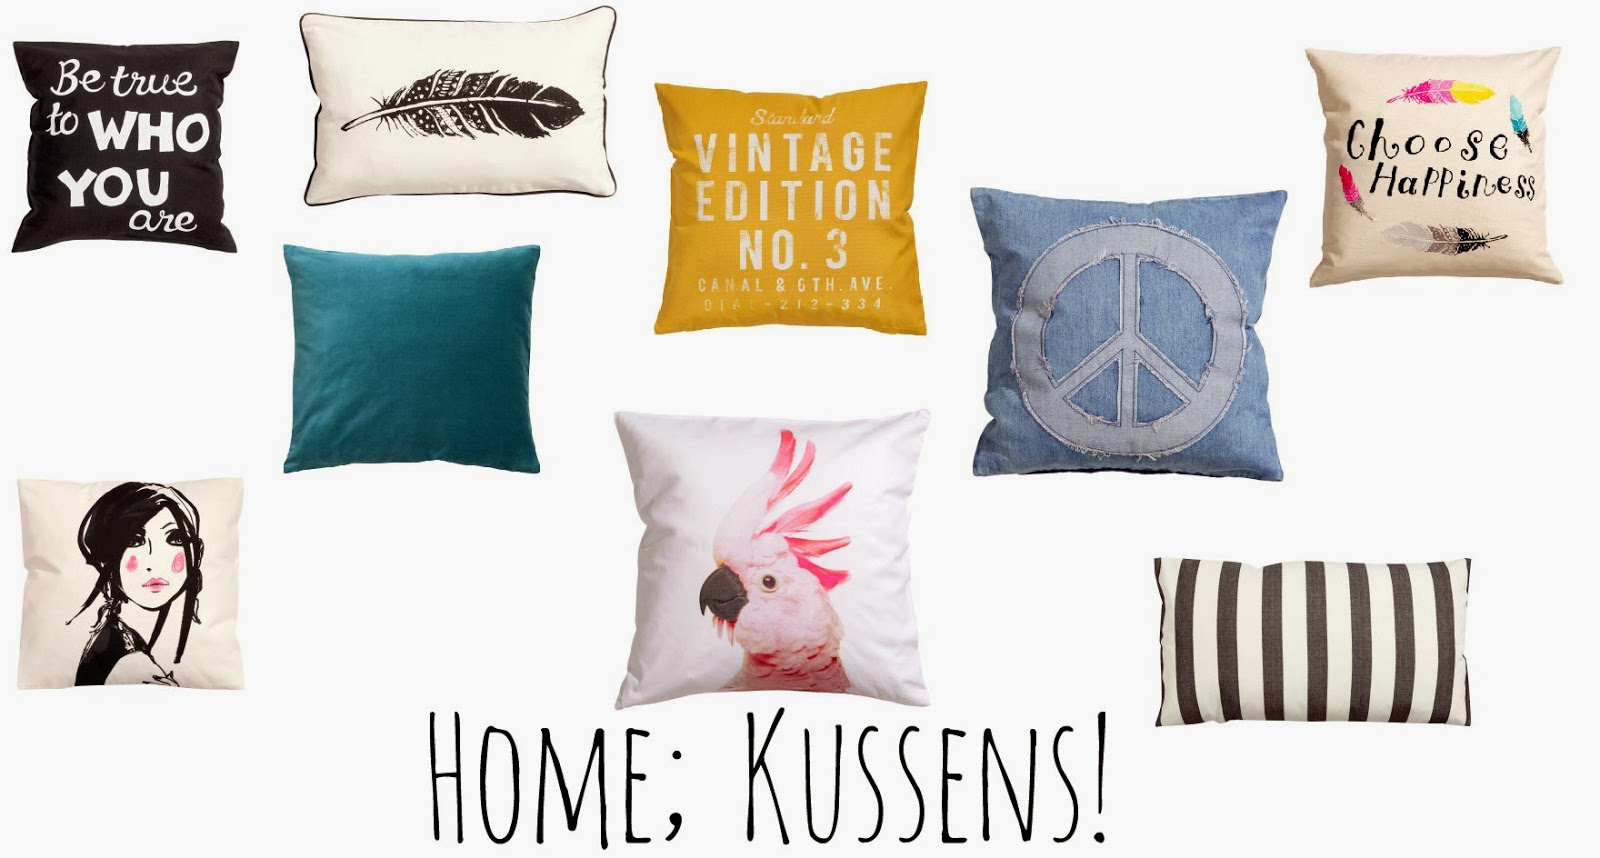 Kussens H&m Babsies Lifestyle Home Kussens